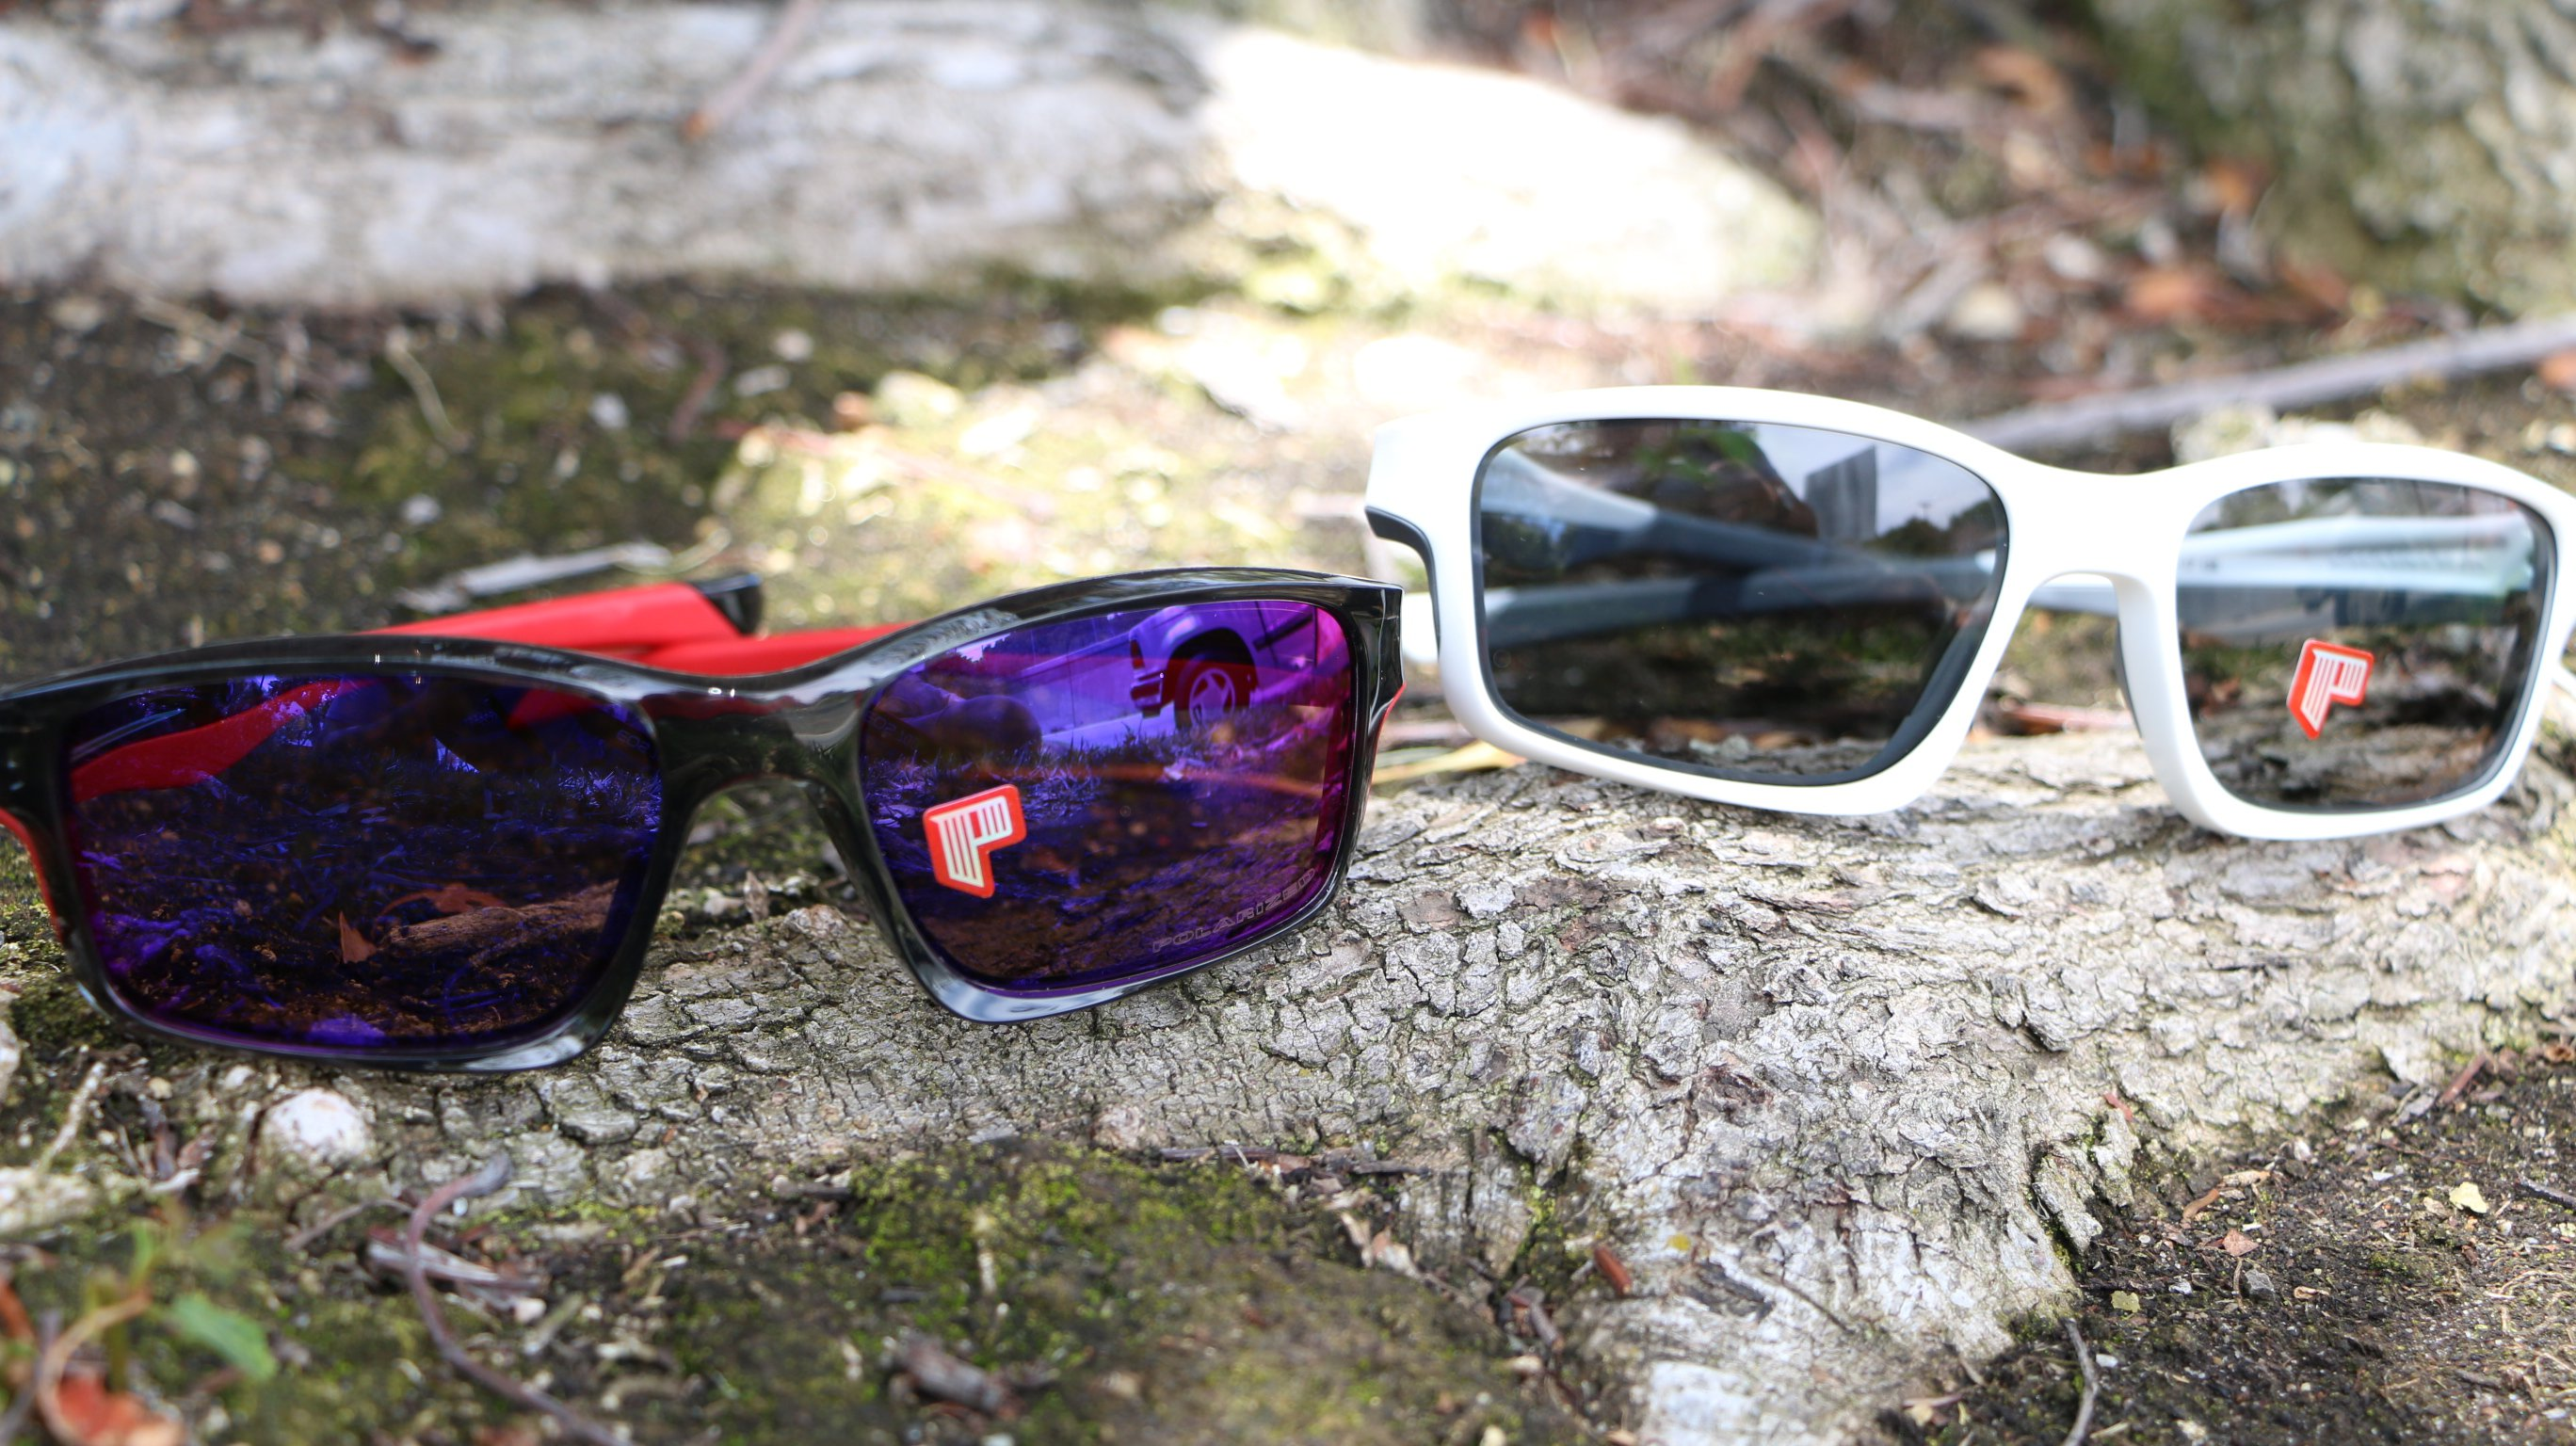 Oakley Chinlink Prescription Sunglasses, Best Running Sunglasses, Best Marathon Running Sunglasses